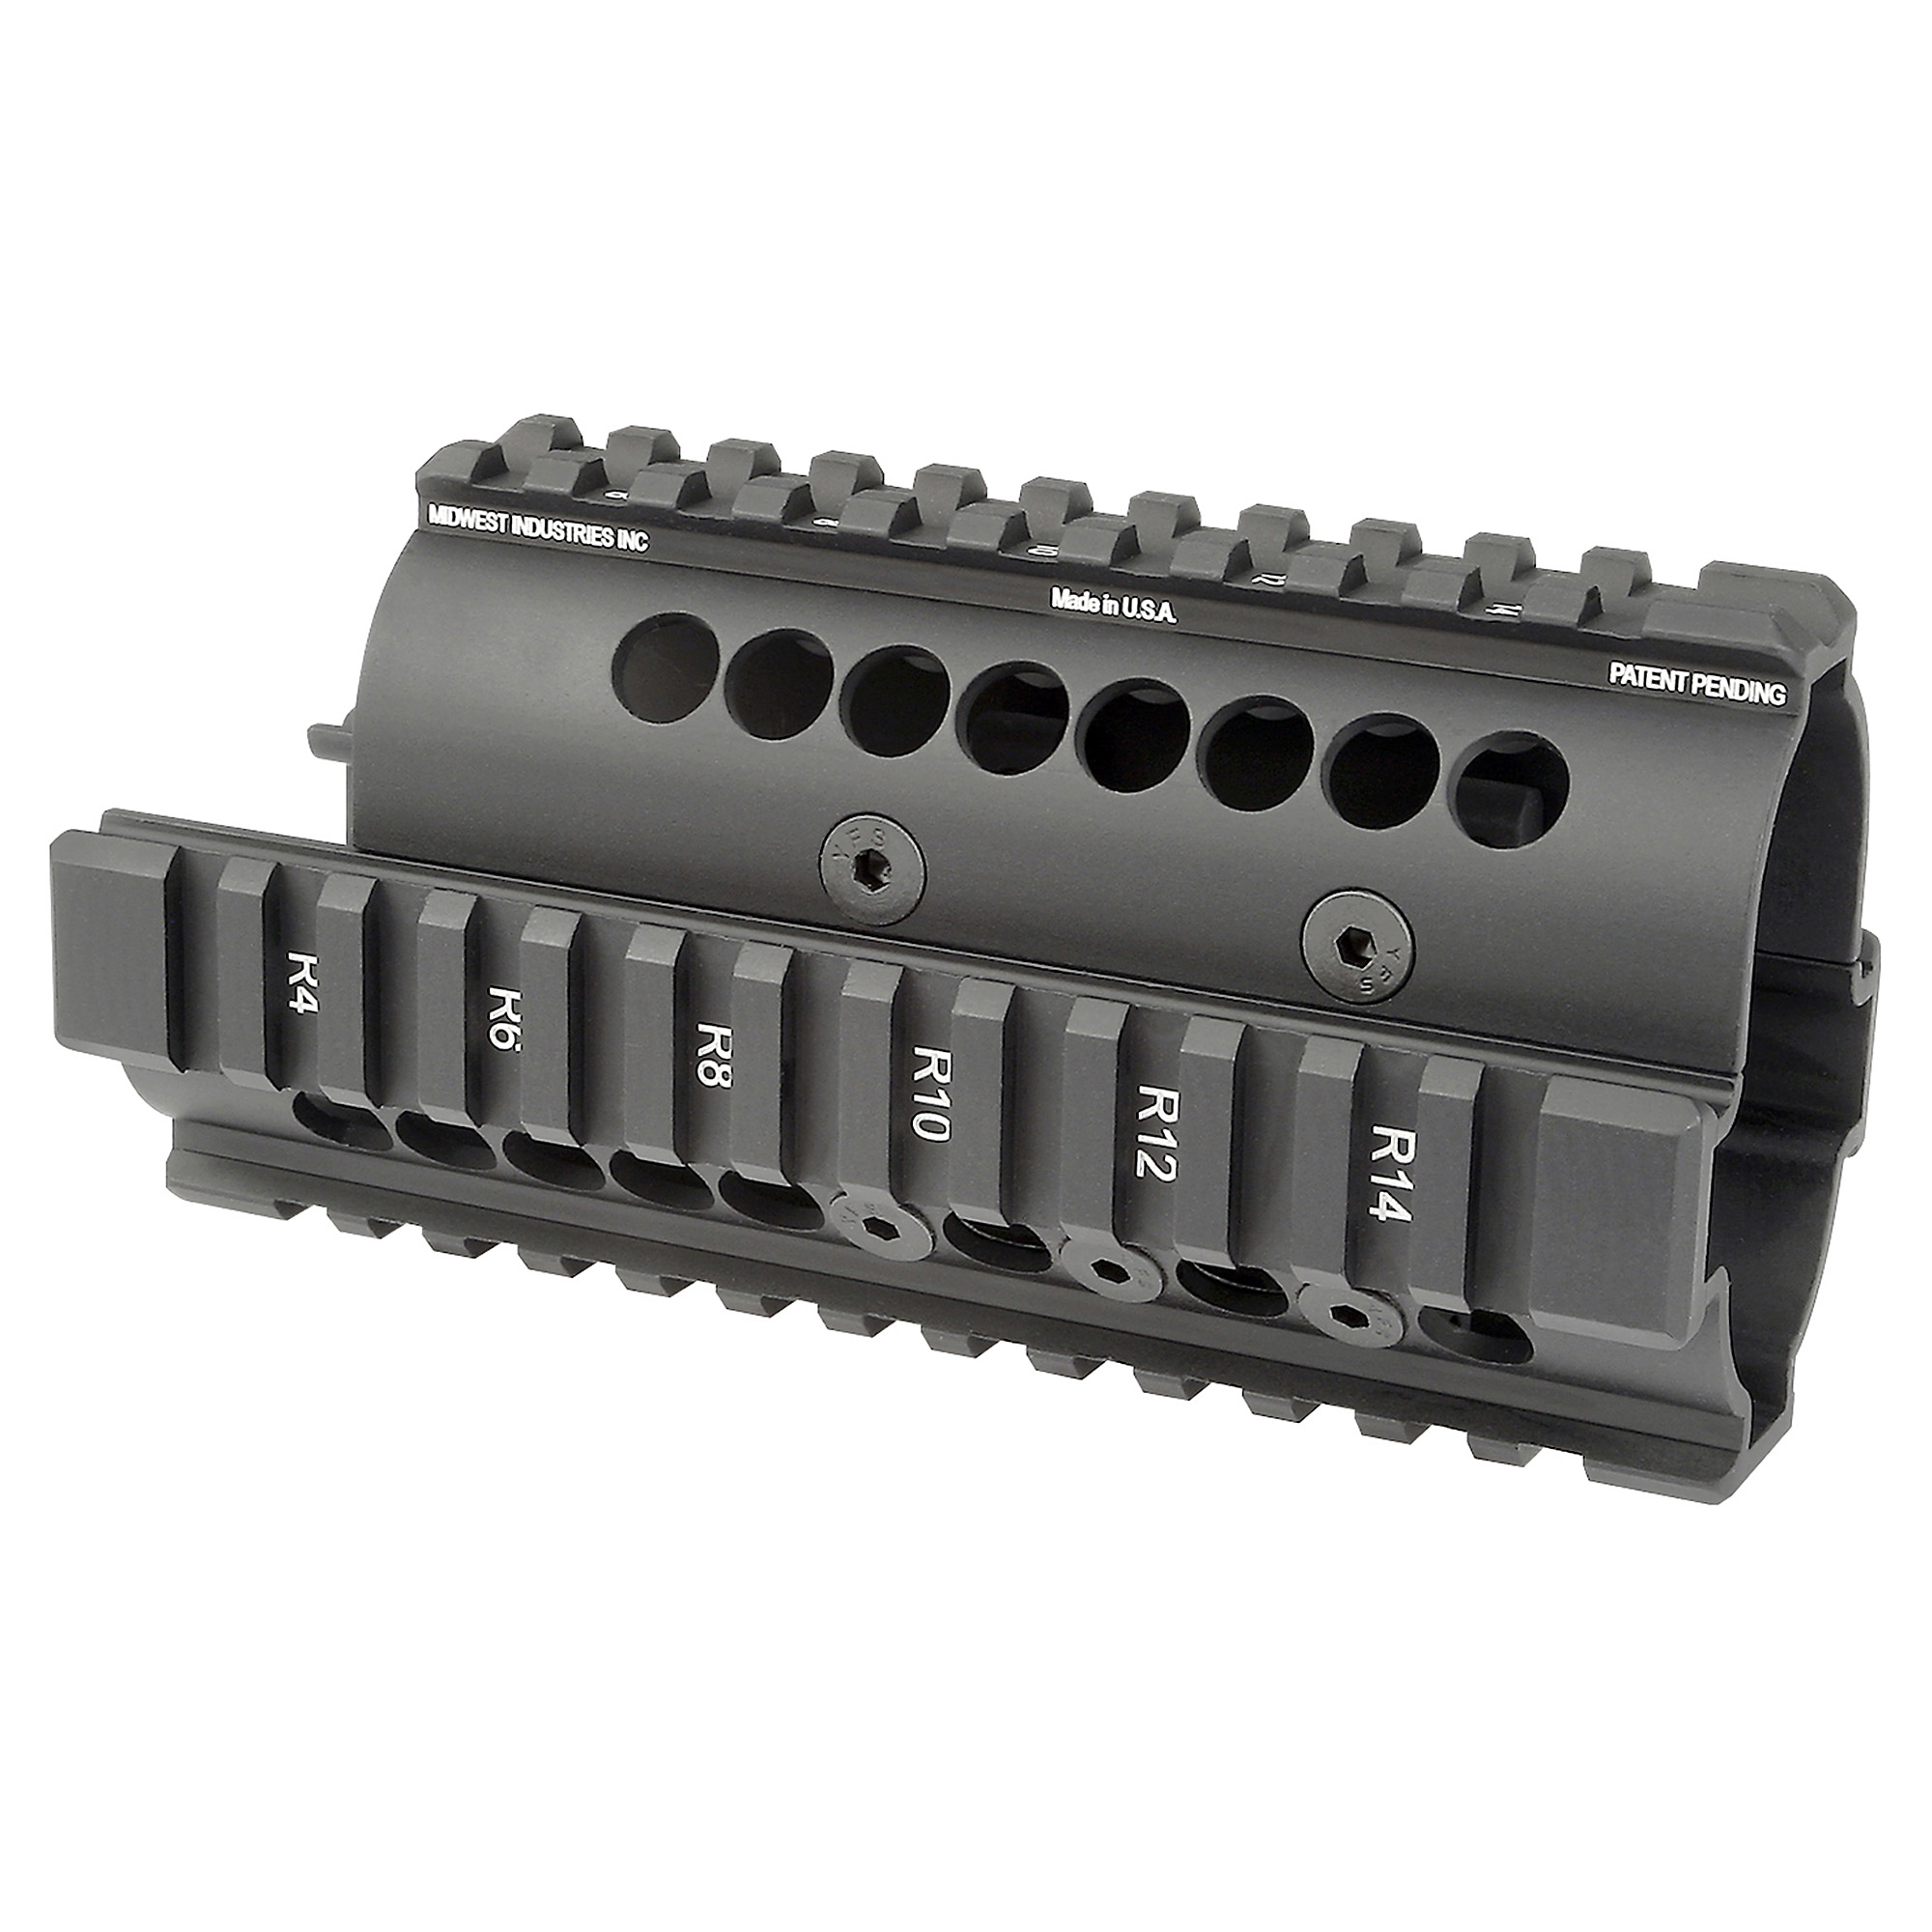 Midwest Industries Yugo Model M70 AK-47 Standard Top cover Handguard will allow you to accessorize your AK the way you see fit. Constructed from high quality 6061 Aluminum and designed with true mil-spec 1913 picatinny rails this handguard is a sure winner. The handguard can be easily installed in minutes with the included wrenches and does not require the services of a gunsmith. Like with all Midwest Industries products they are proudly made right here in the USA and feature a lifetime warranty.